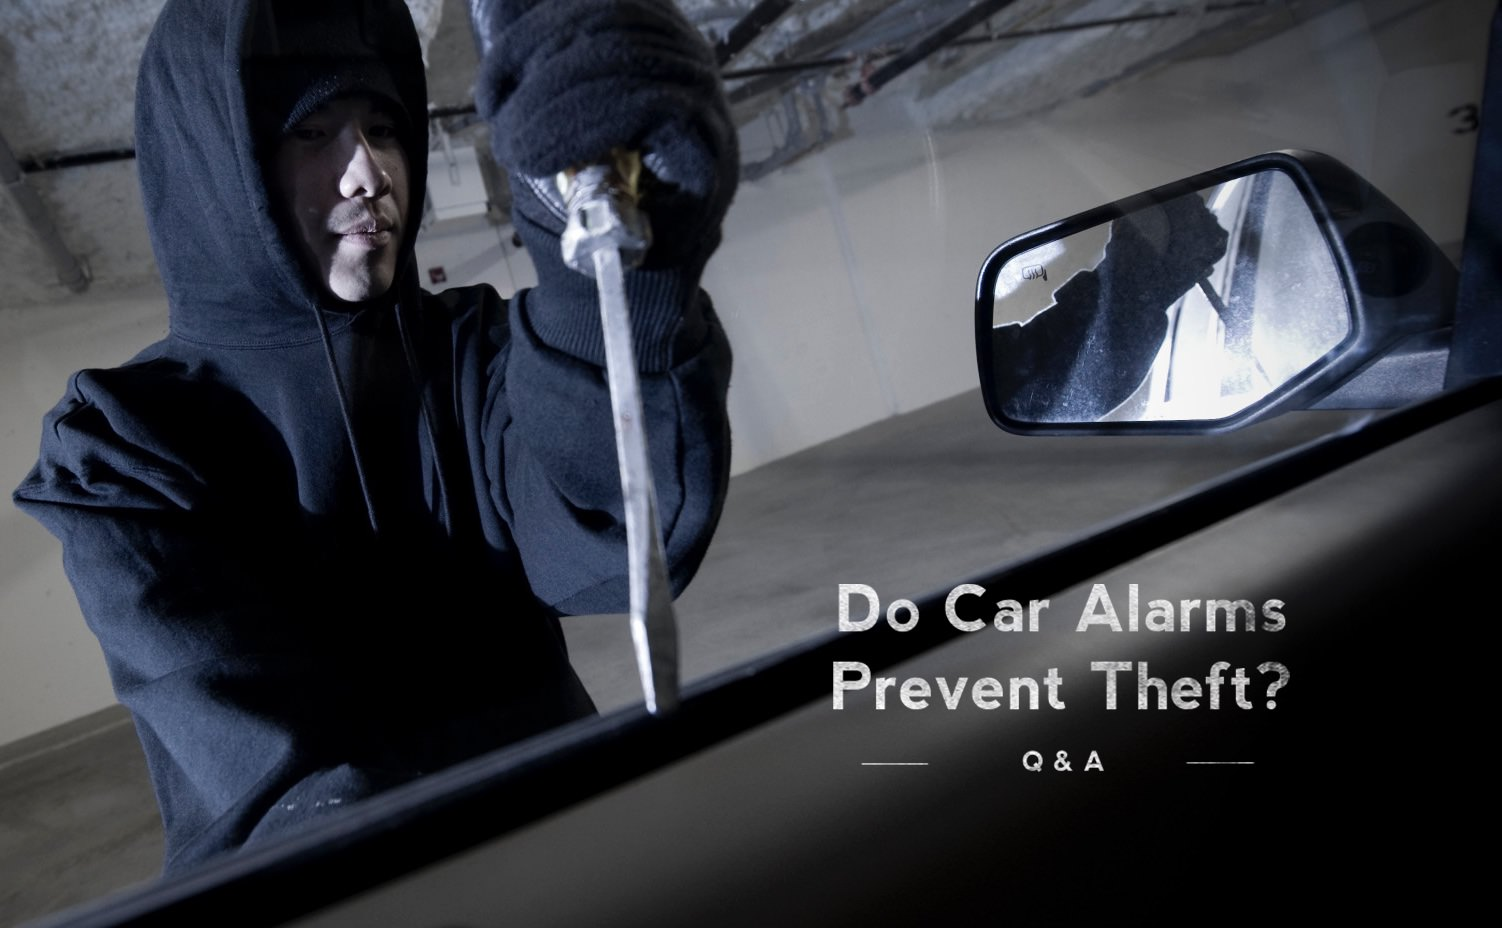 Do Car Alarms Prevent Theft?